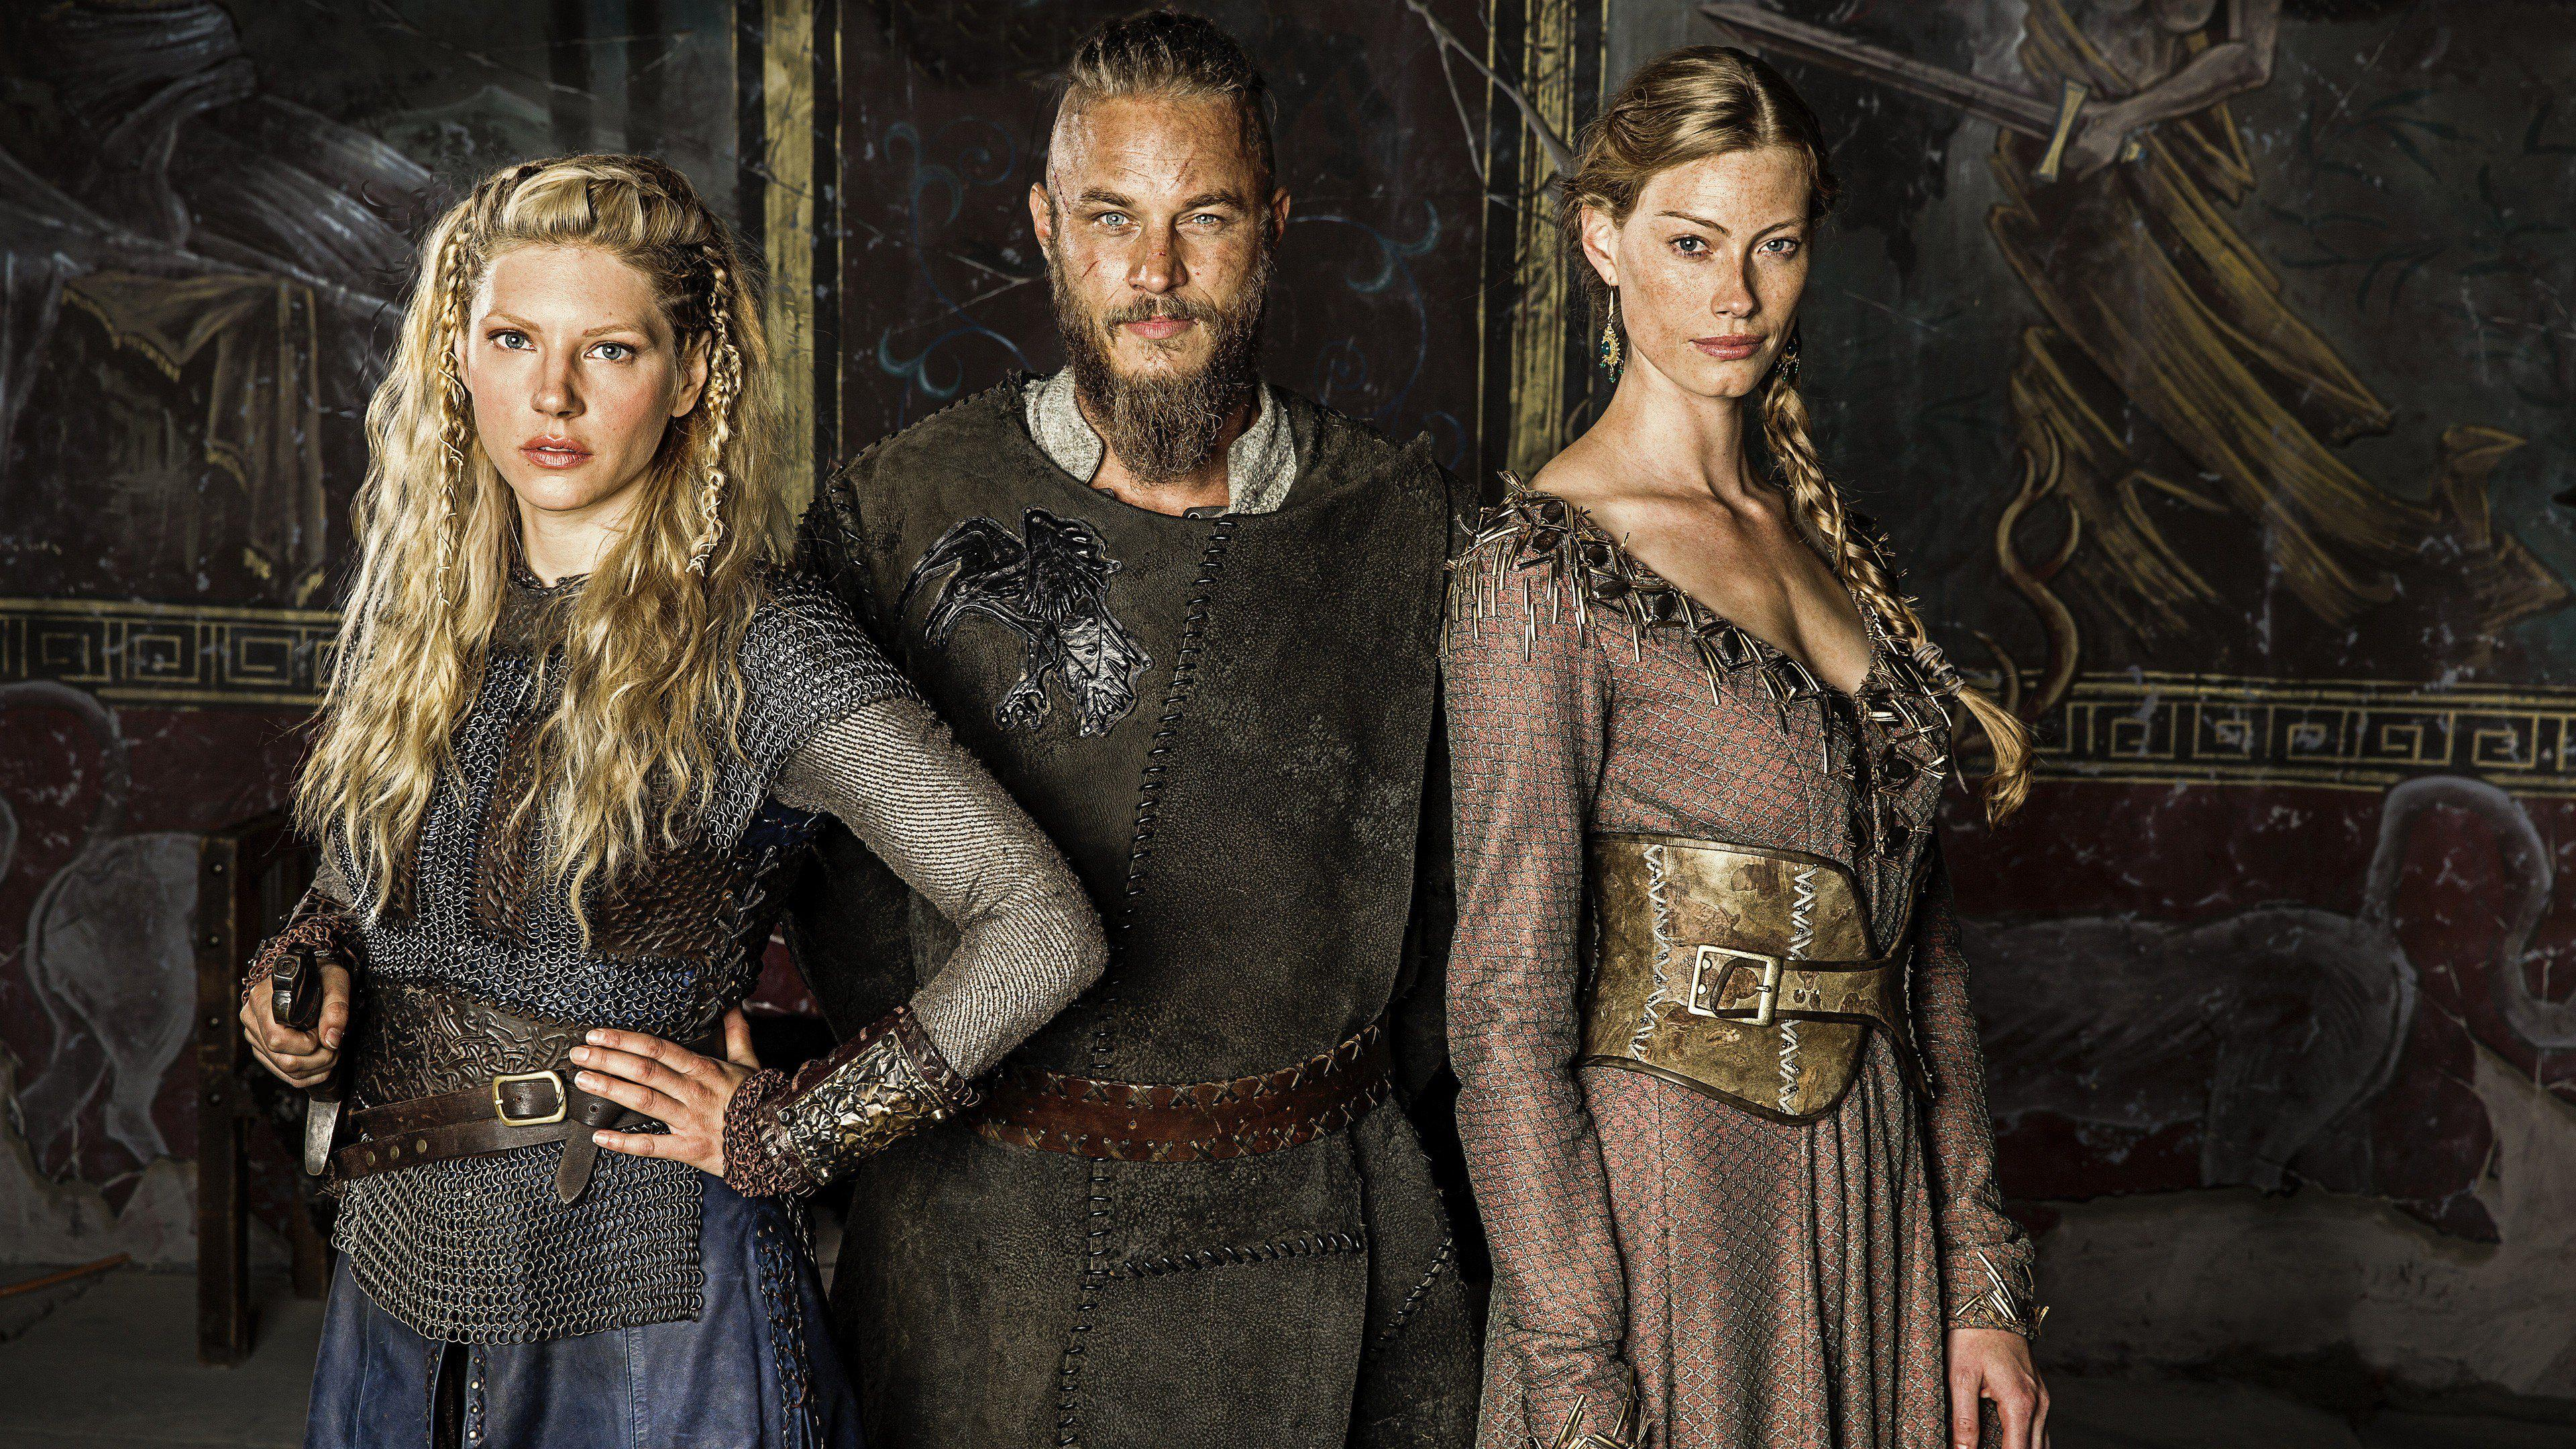 Vikings, HD Tv Shows, 4k Wallpapers, Image, Backgrounds, Photos and